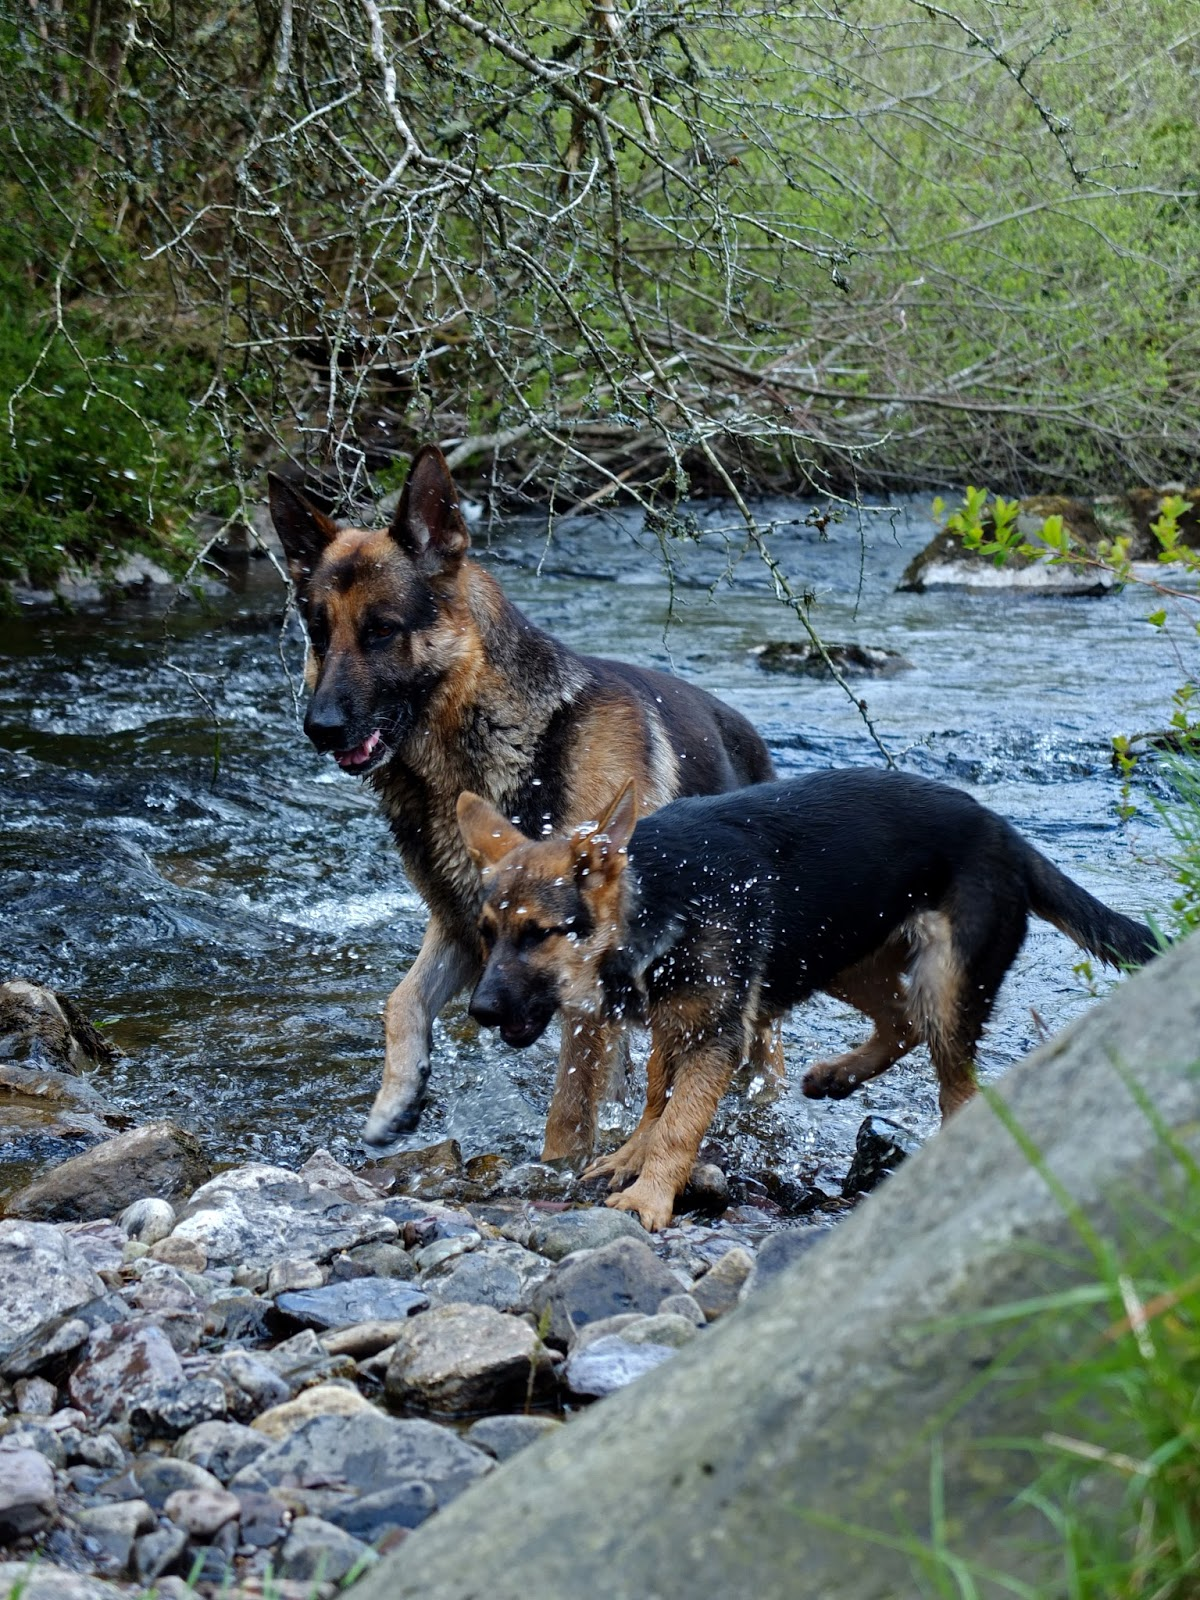 German Shepherd dog and puppy standing in the river getting splashed.